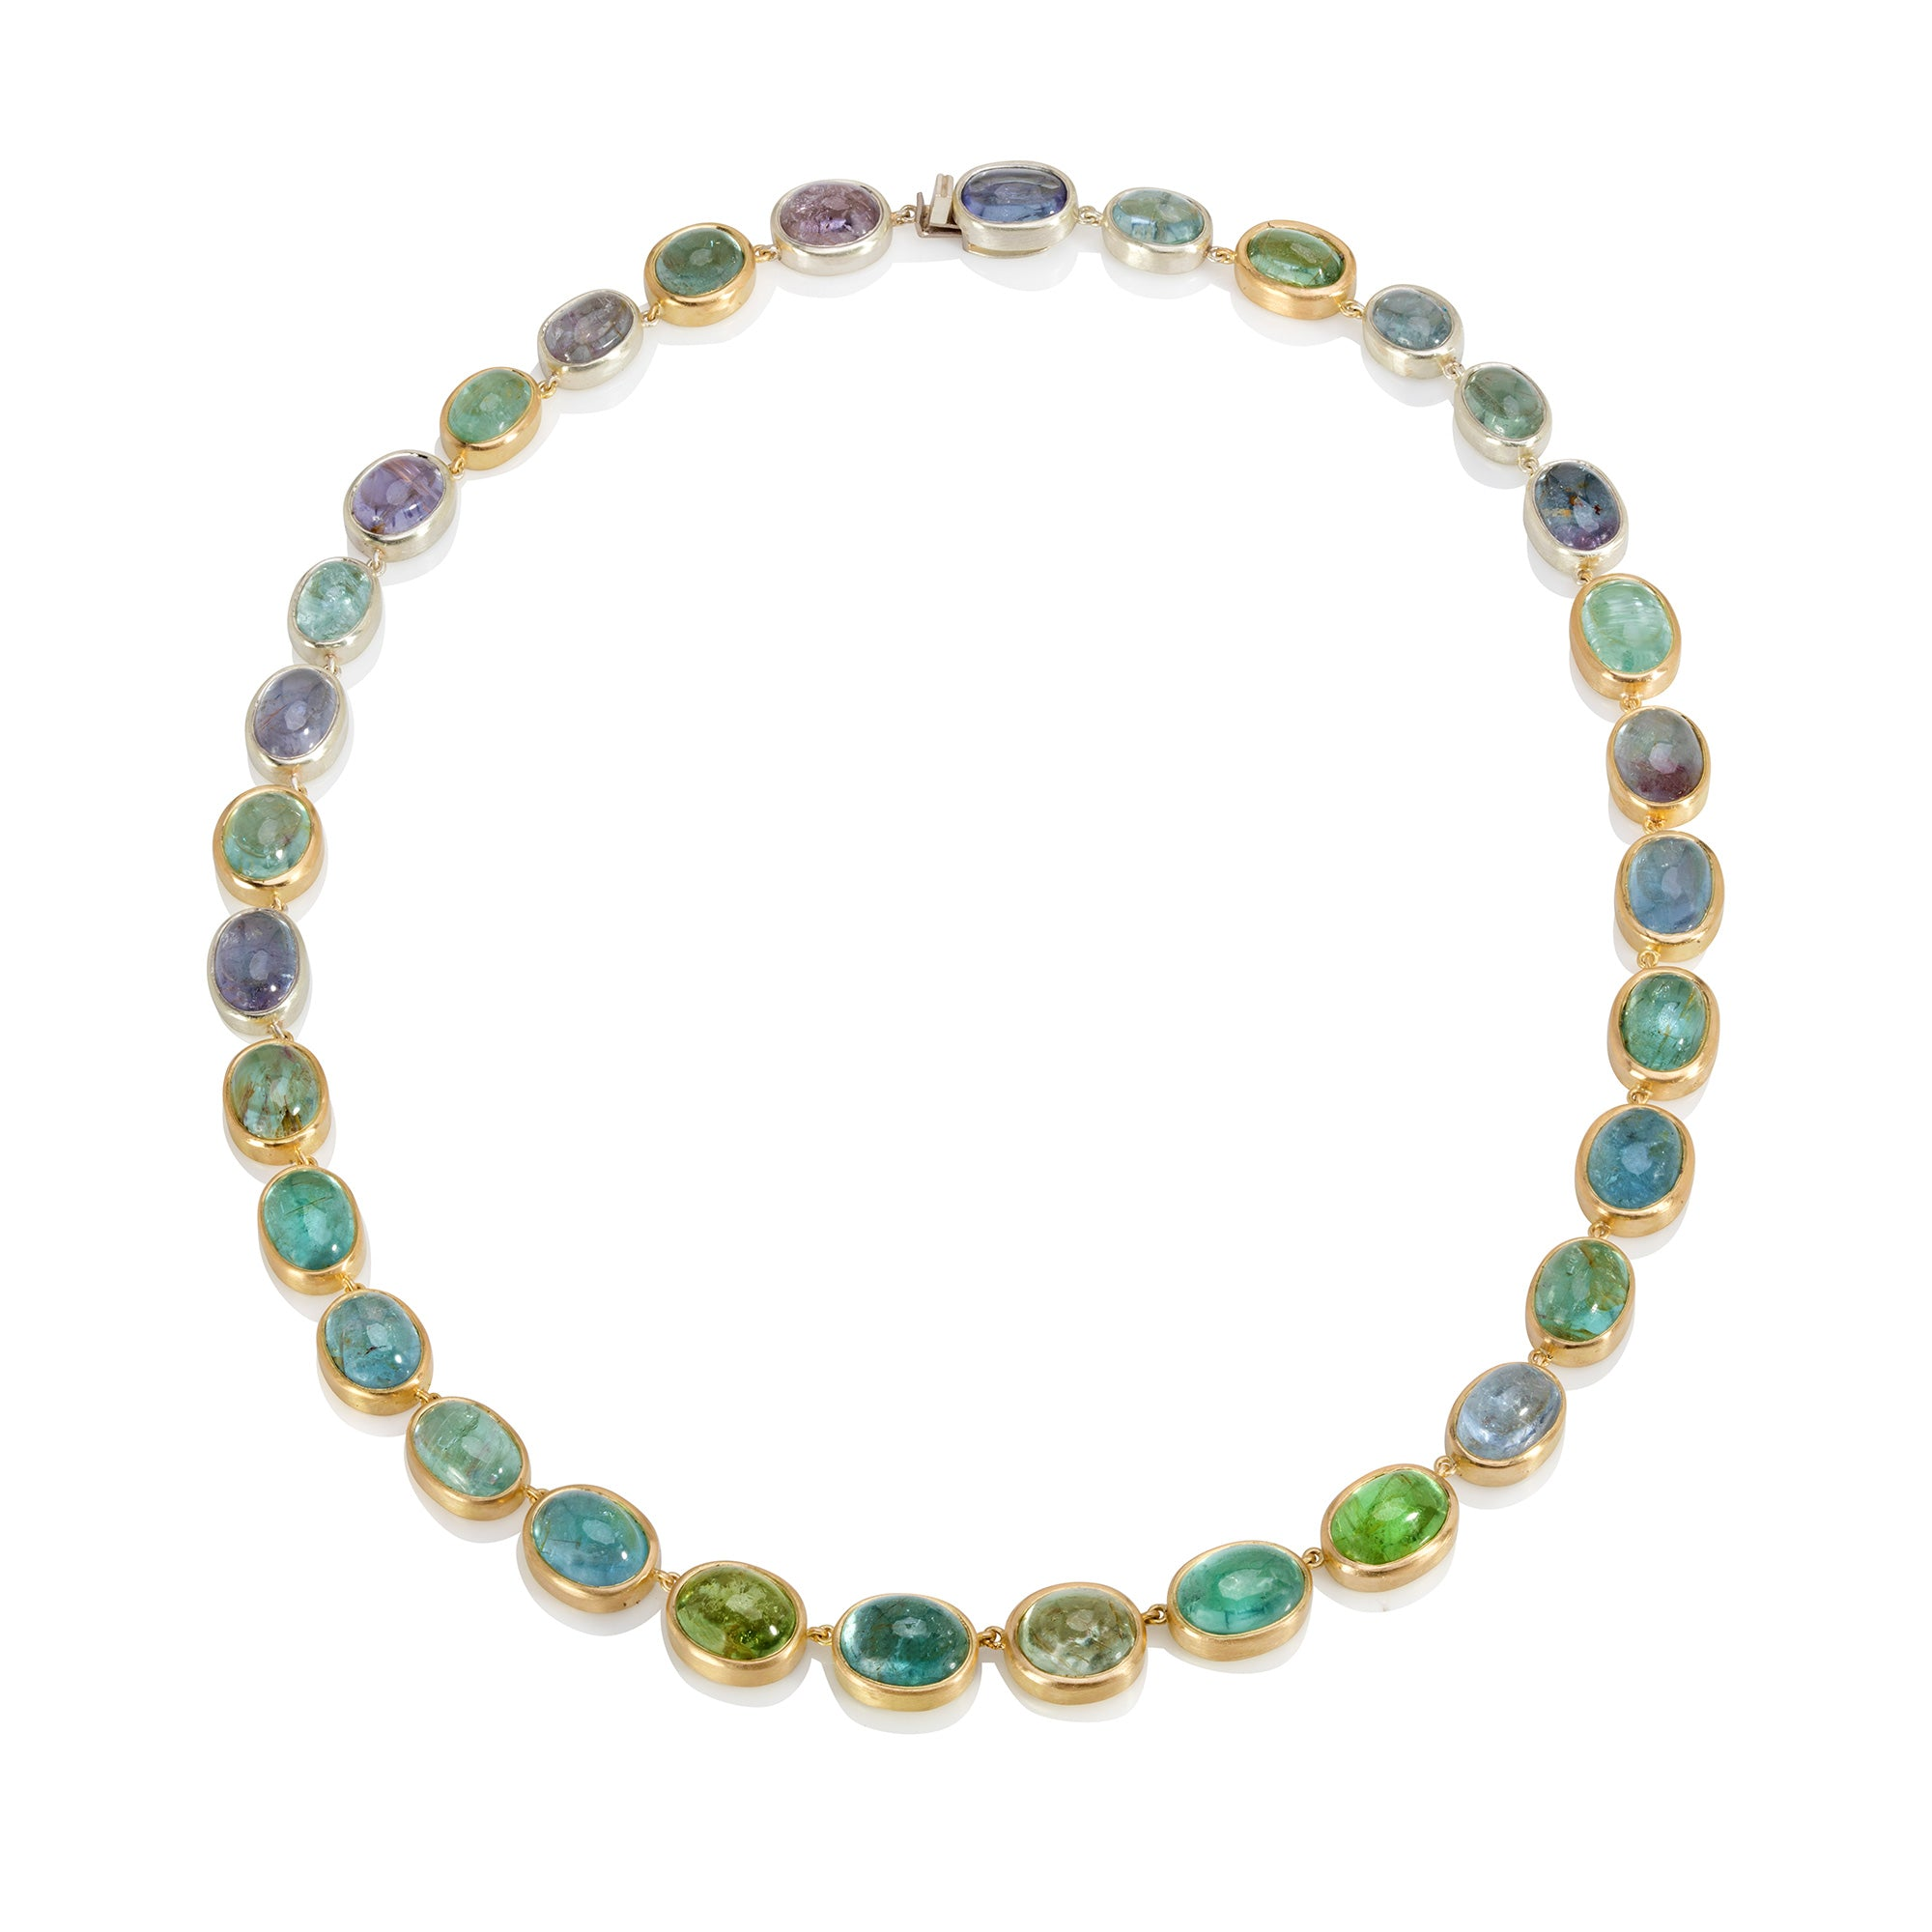 Paraiba Tourmaline Cabochon Necklace